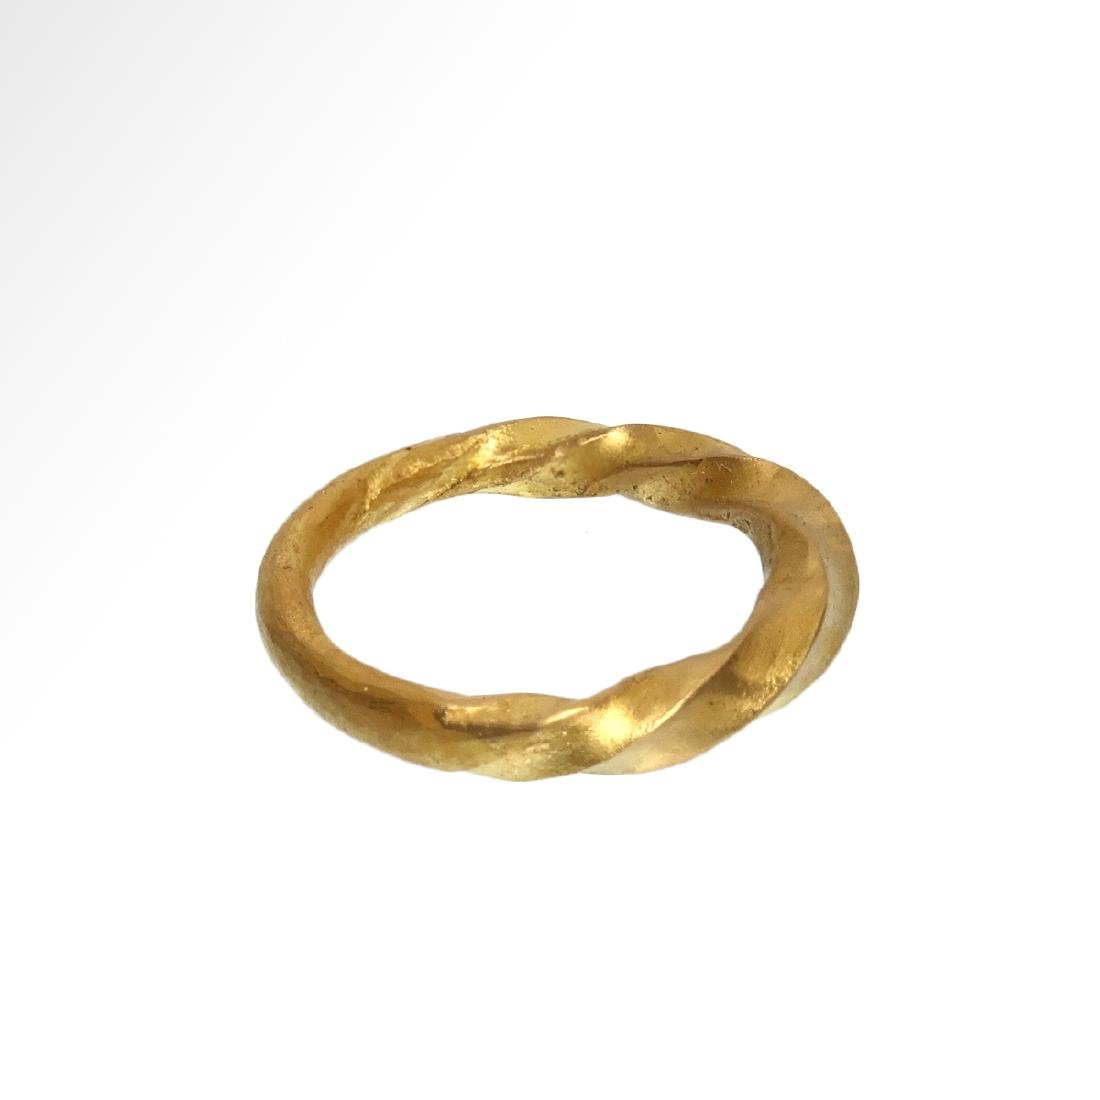 Viking Solid Gold Ring, c. 11th Century A.D. - 4